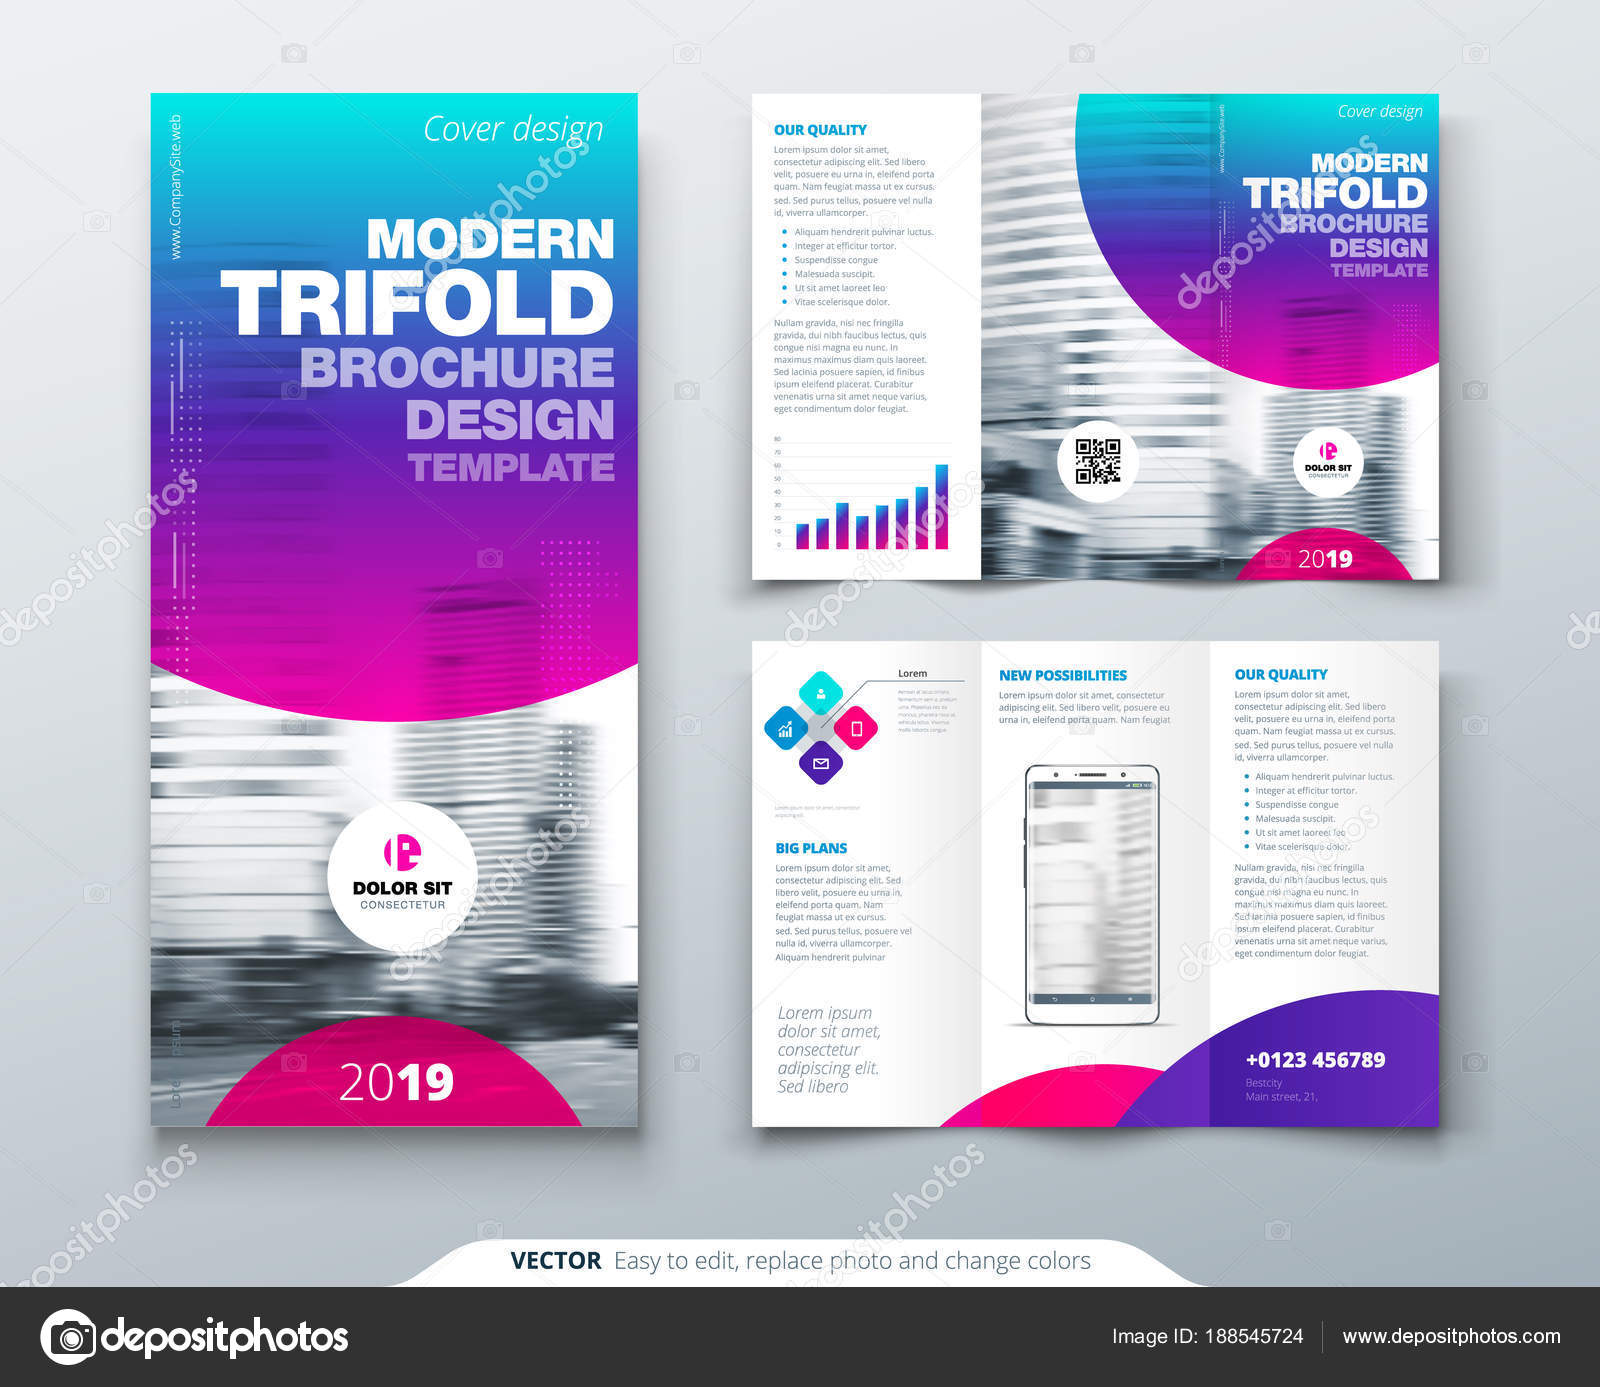 tri fold brochure design cool business template for tri fold flyer layout with modern